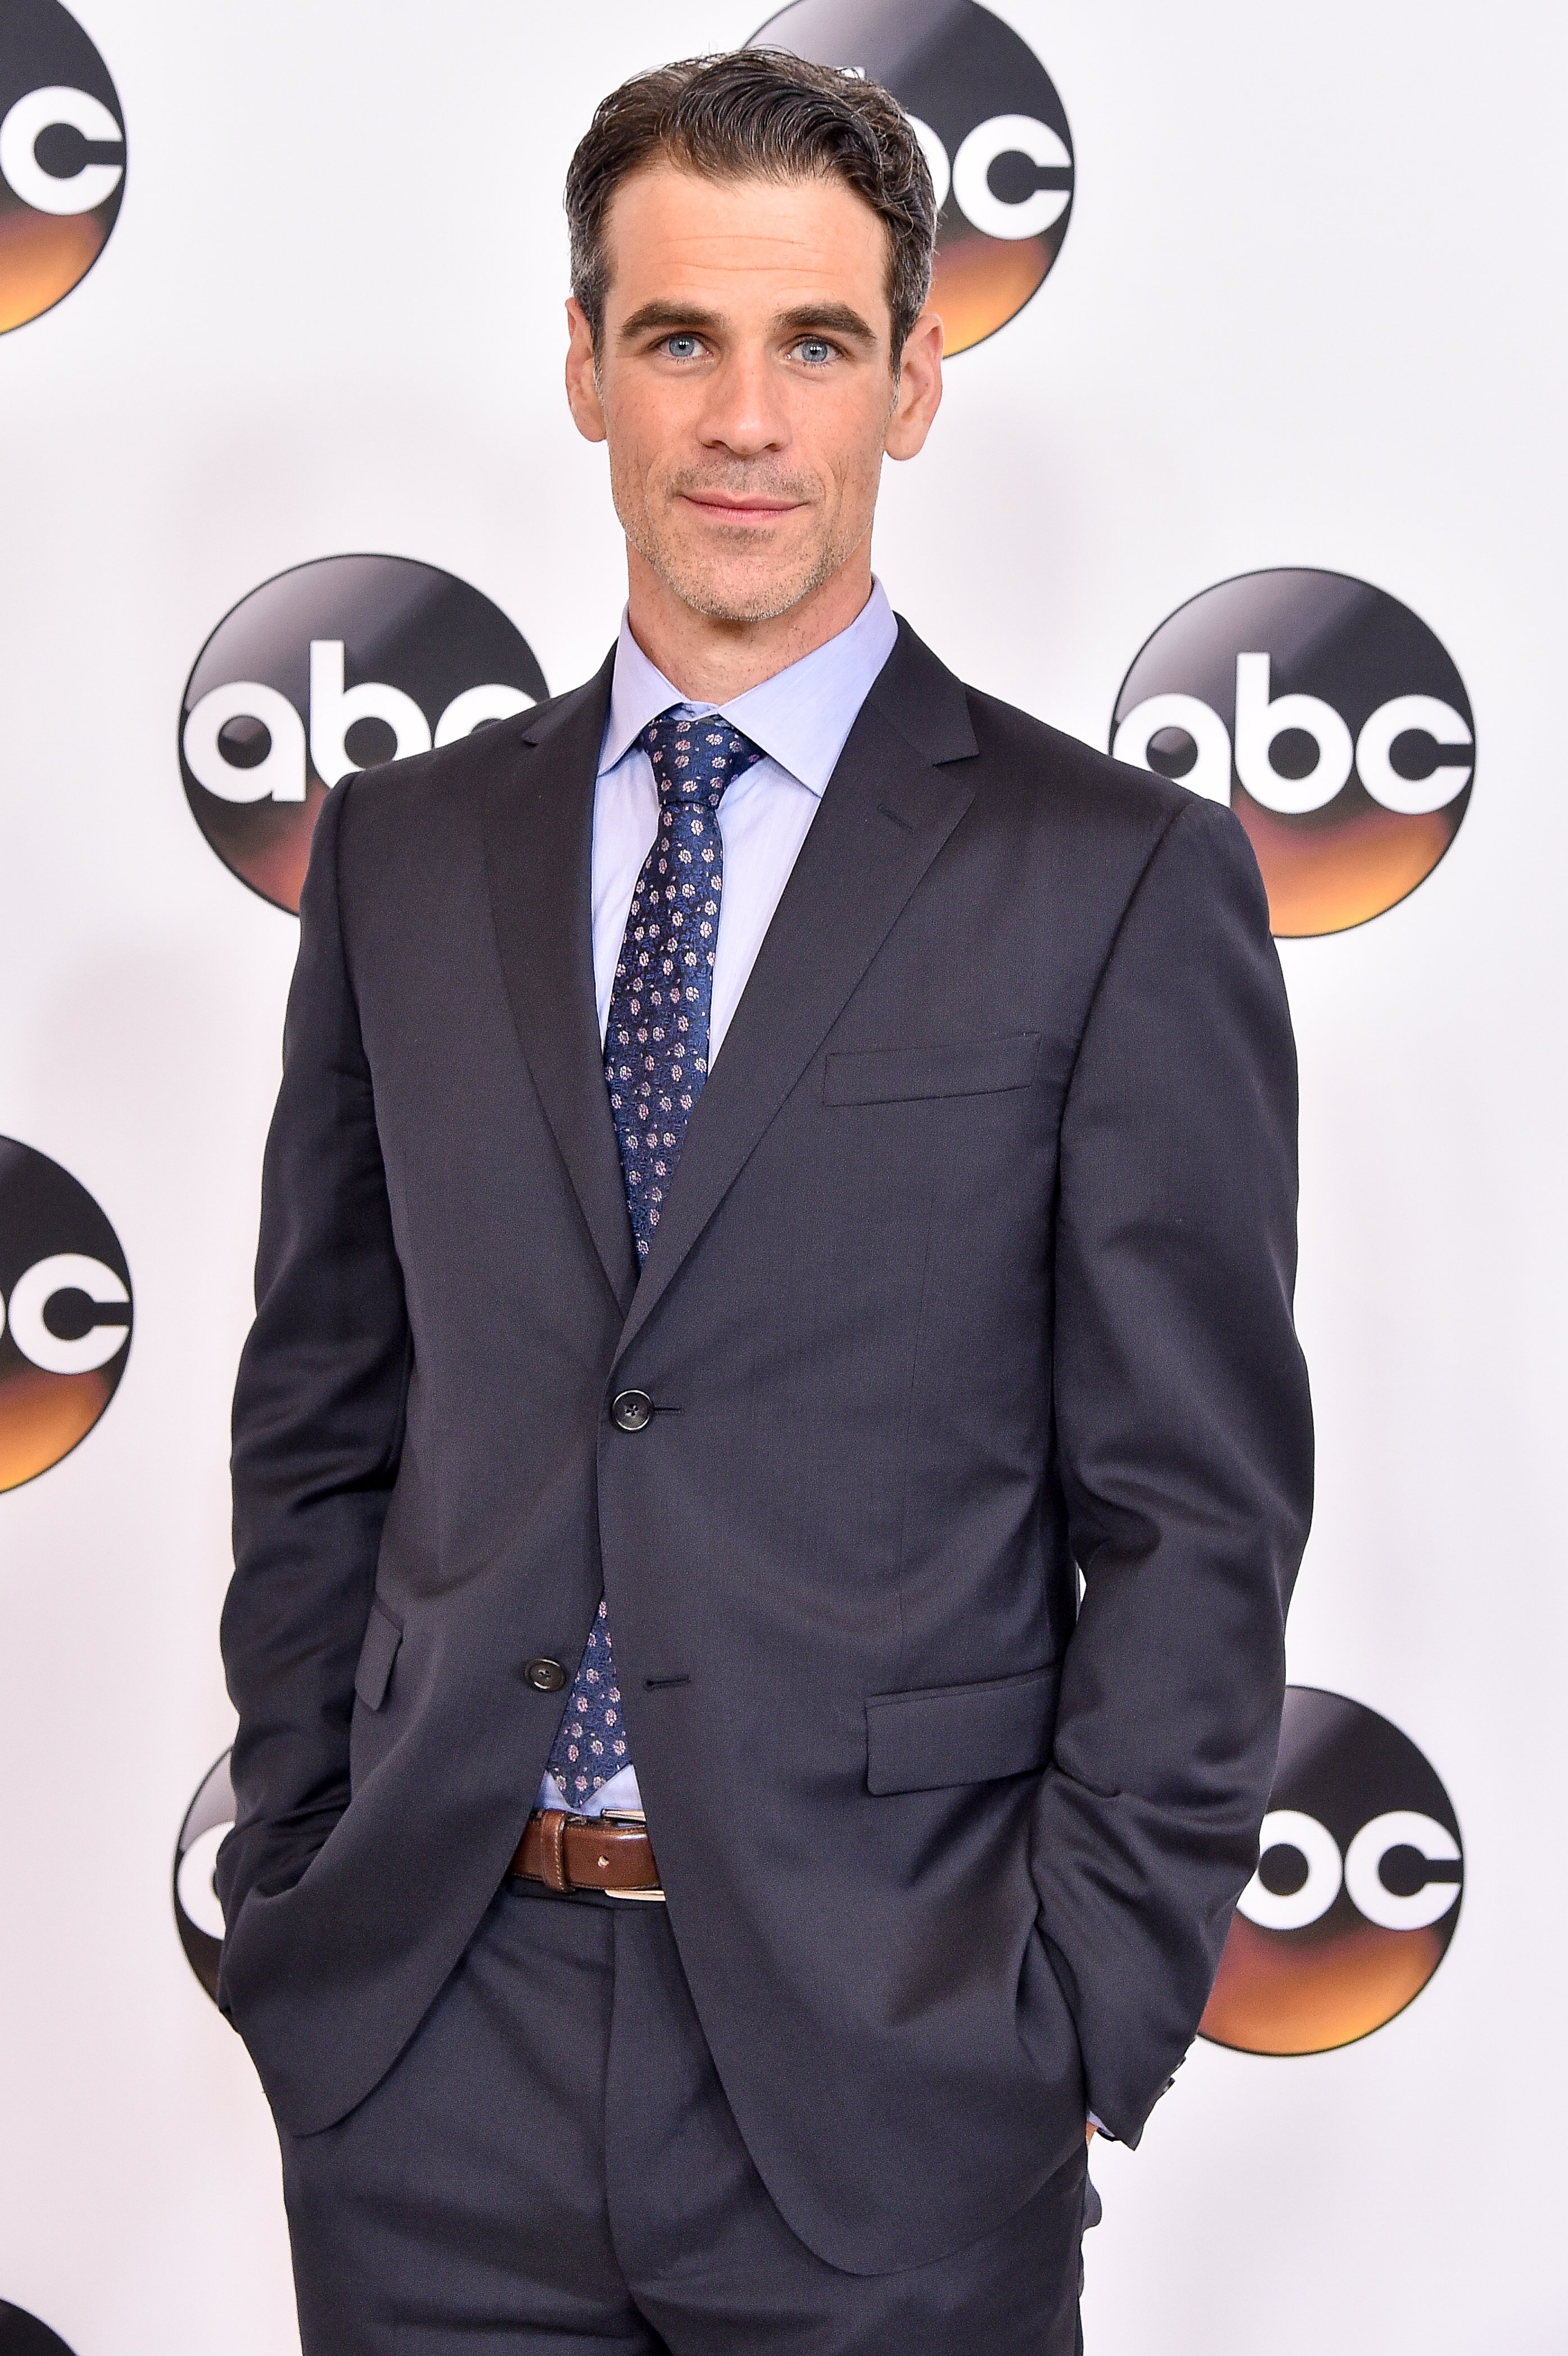 Eddie Cahill attends the Disney ABC Television Group TCA Summer Press Tour in Beverly Hills on August 4, 2016   Photo: Getty Images